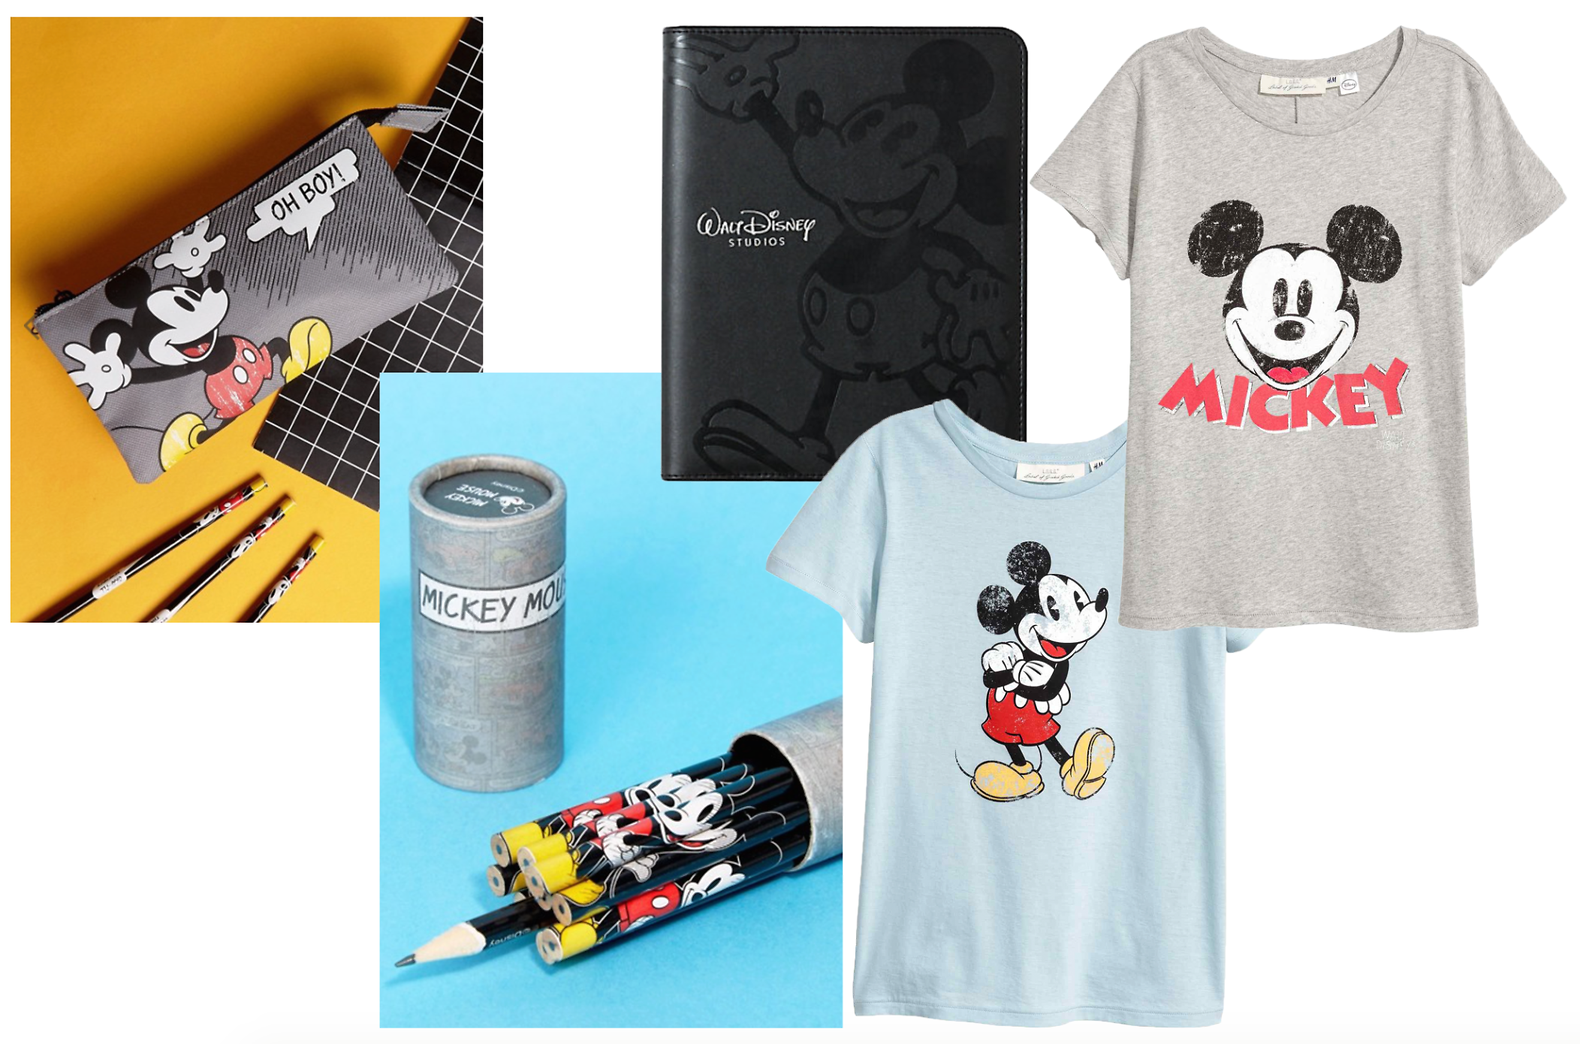 Disney Friday: Classic Mickey